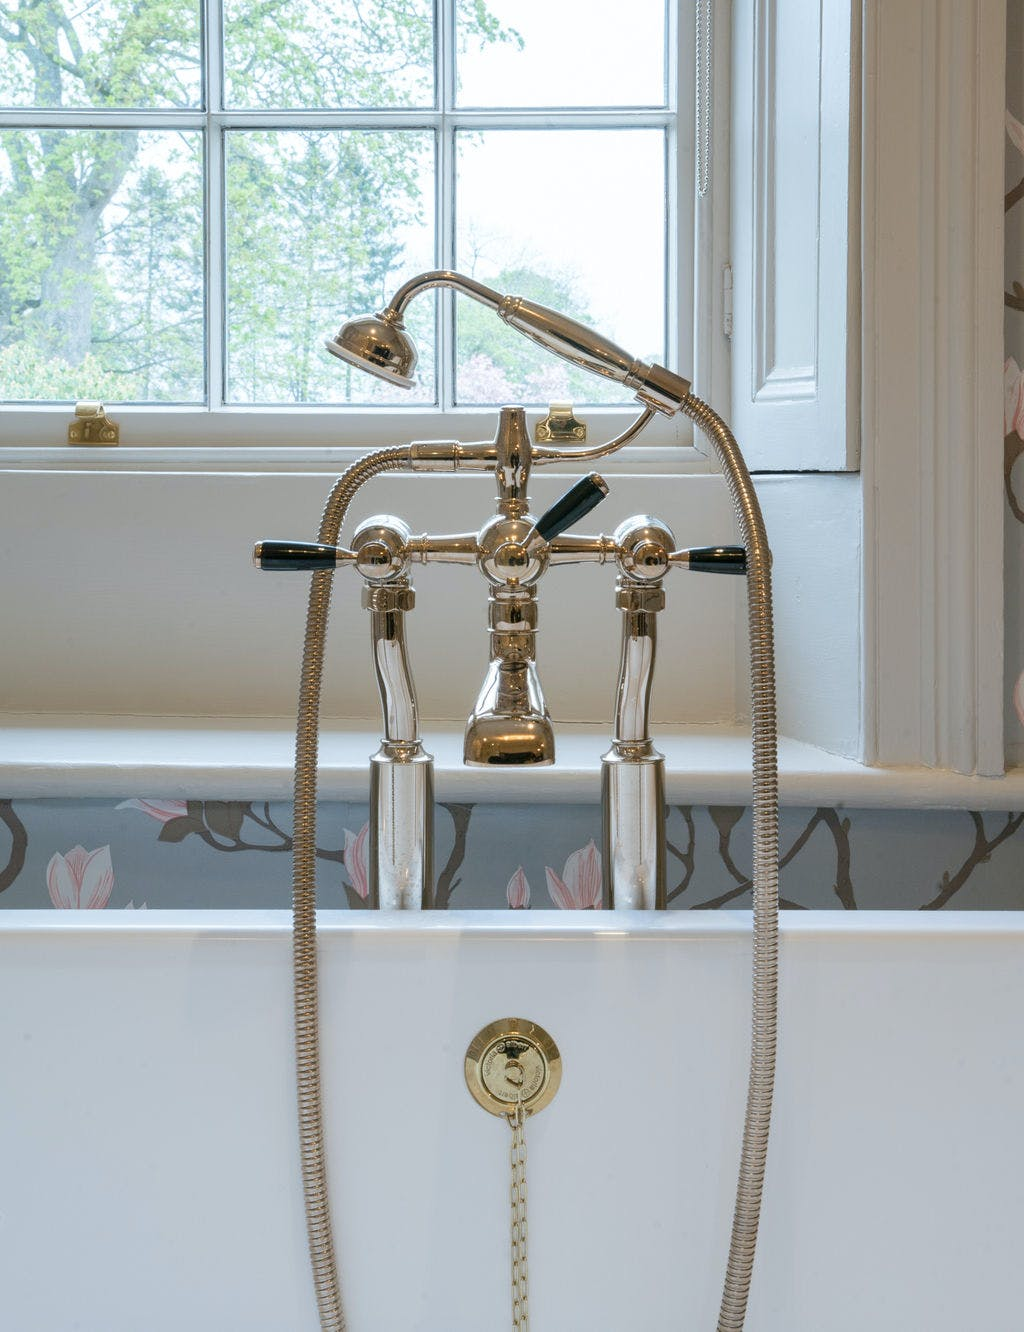 Samuel Heath brass bath and shower mixer. Traditional Fairfield collection in a Polished Nickel finish with gloss black levers.